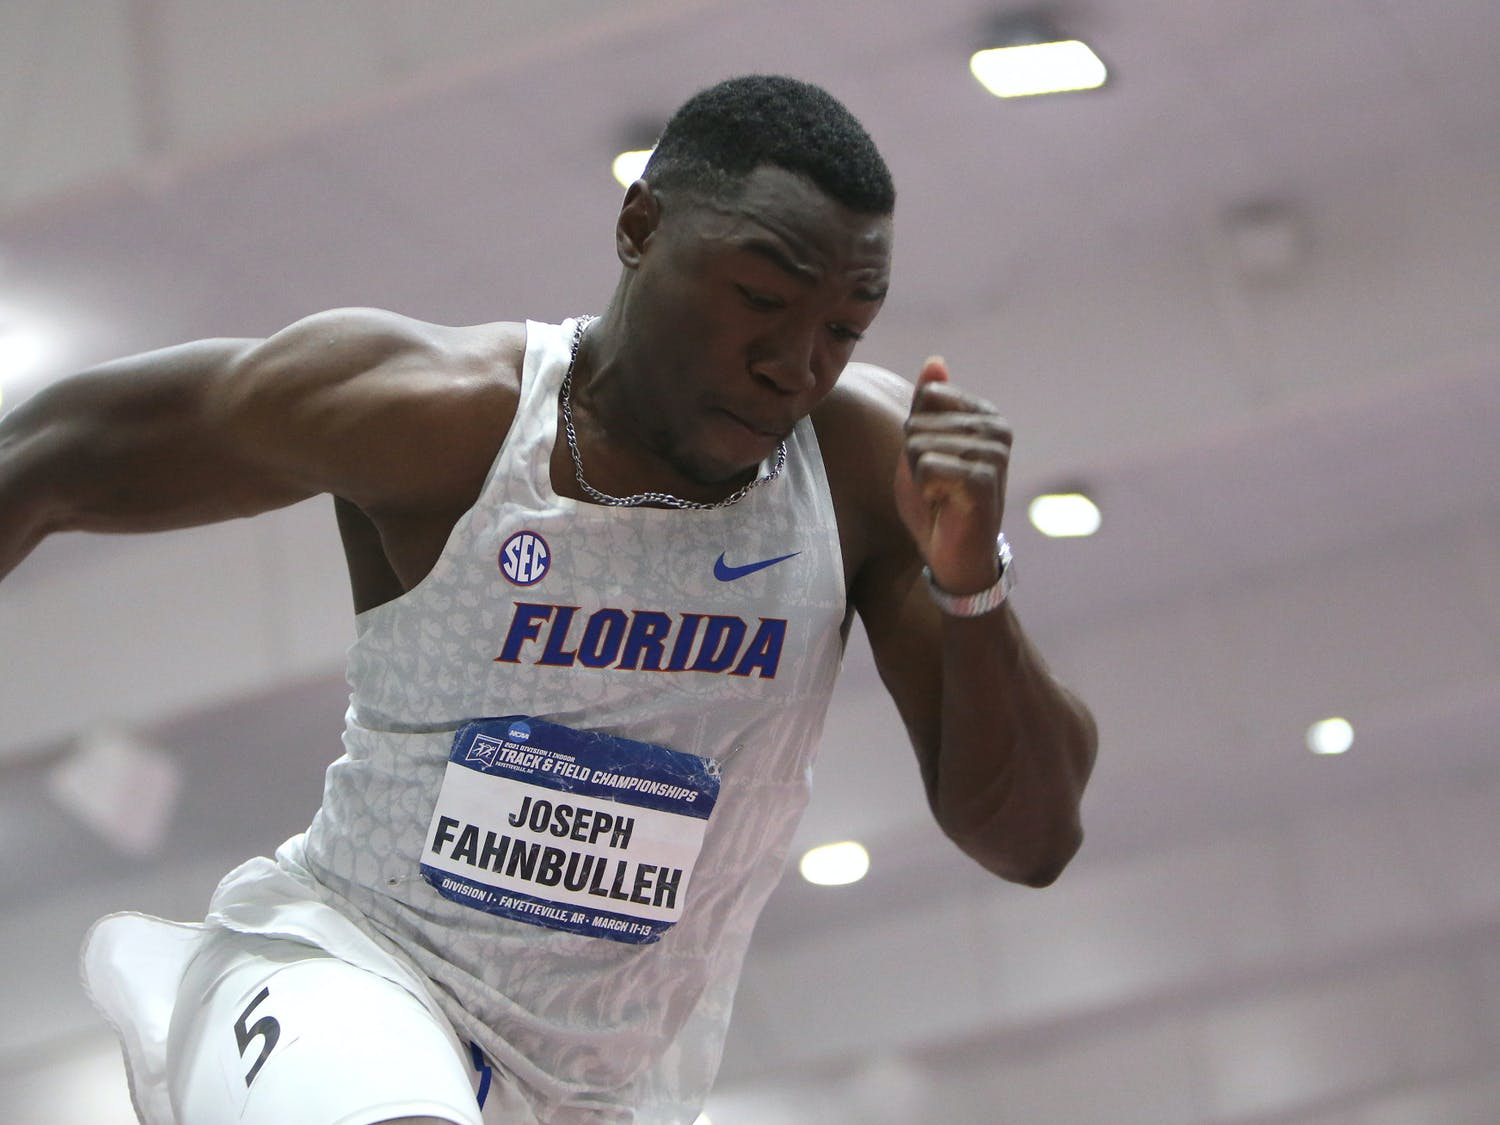 Florida's Joseph Fahnbulleh competes during the third day at the NCAA Indoor Championships on Saturday, March 13, 2021 at Randal Tyson Track Center in Fayetteville, Ark. / UAA Communications photo by Rick Hurtado